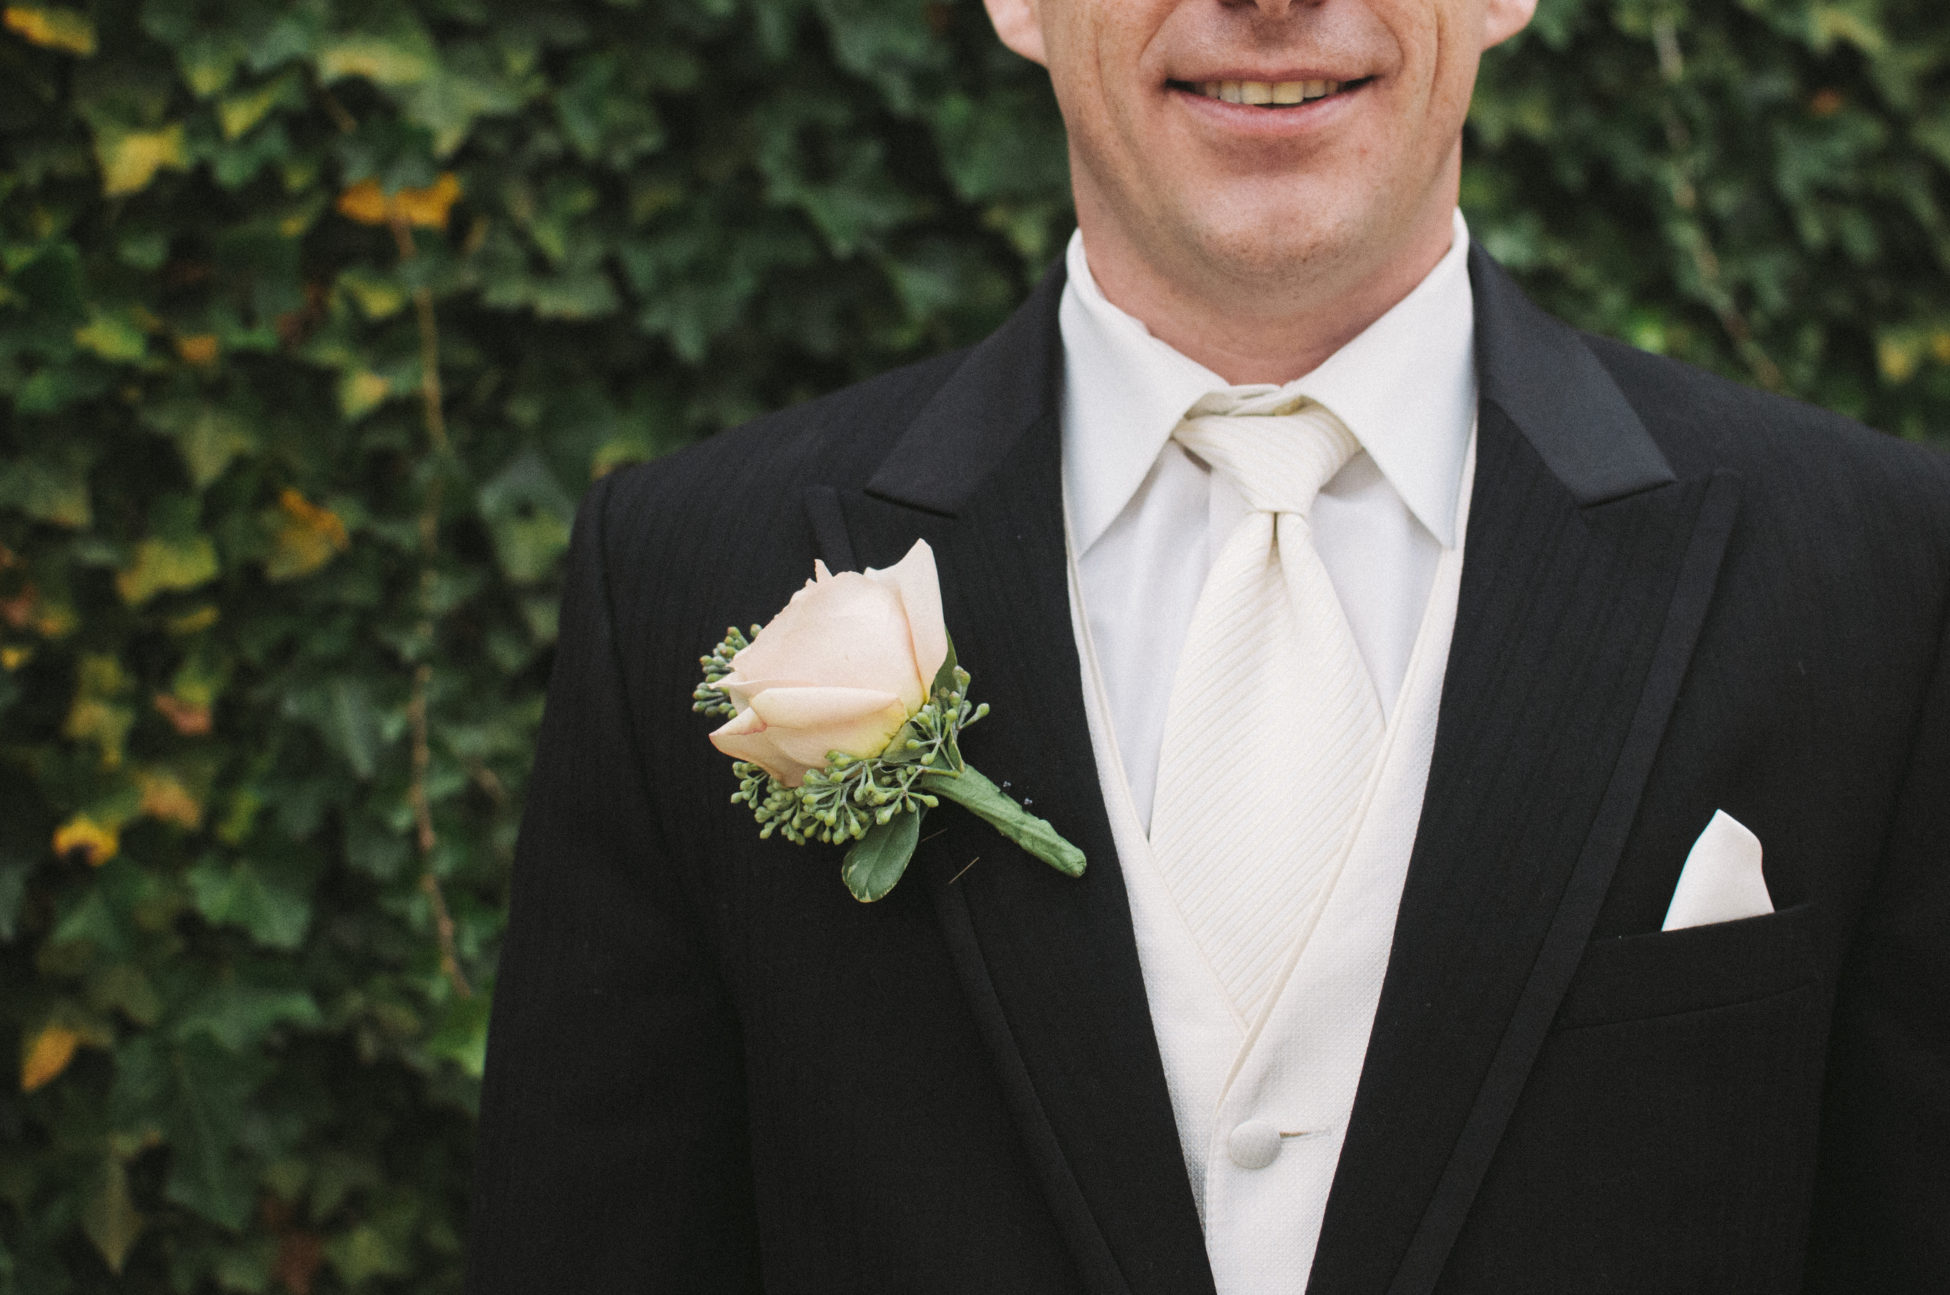 5 Wedding Planning Tips For Grooms